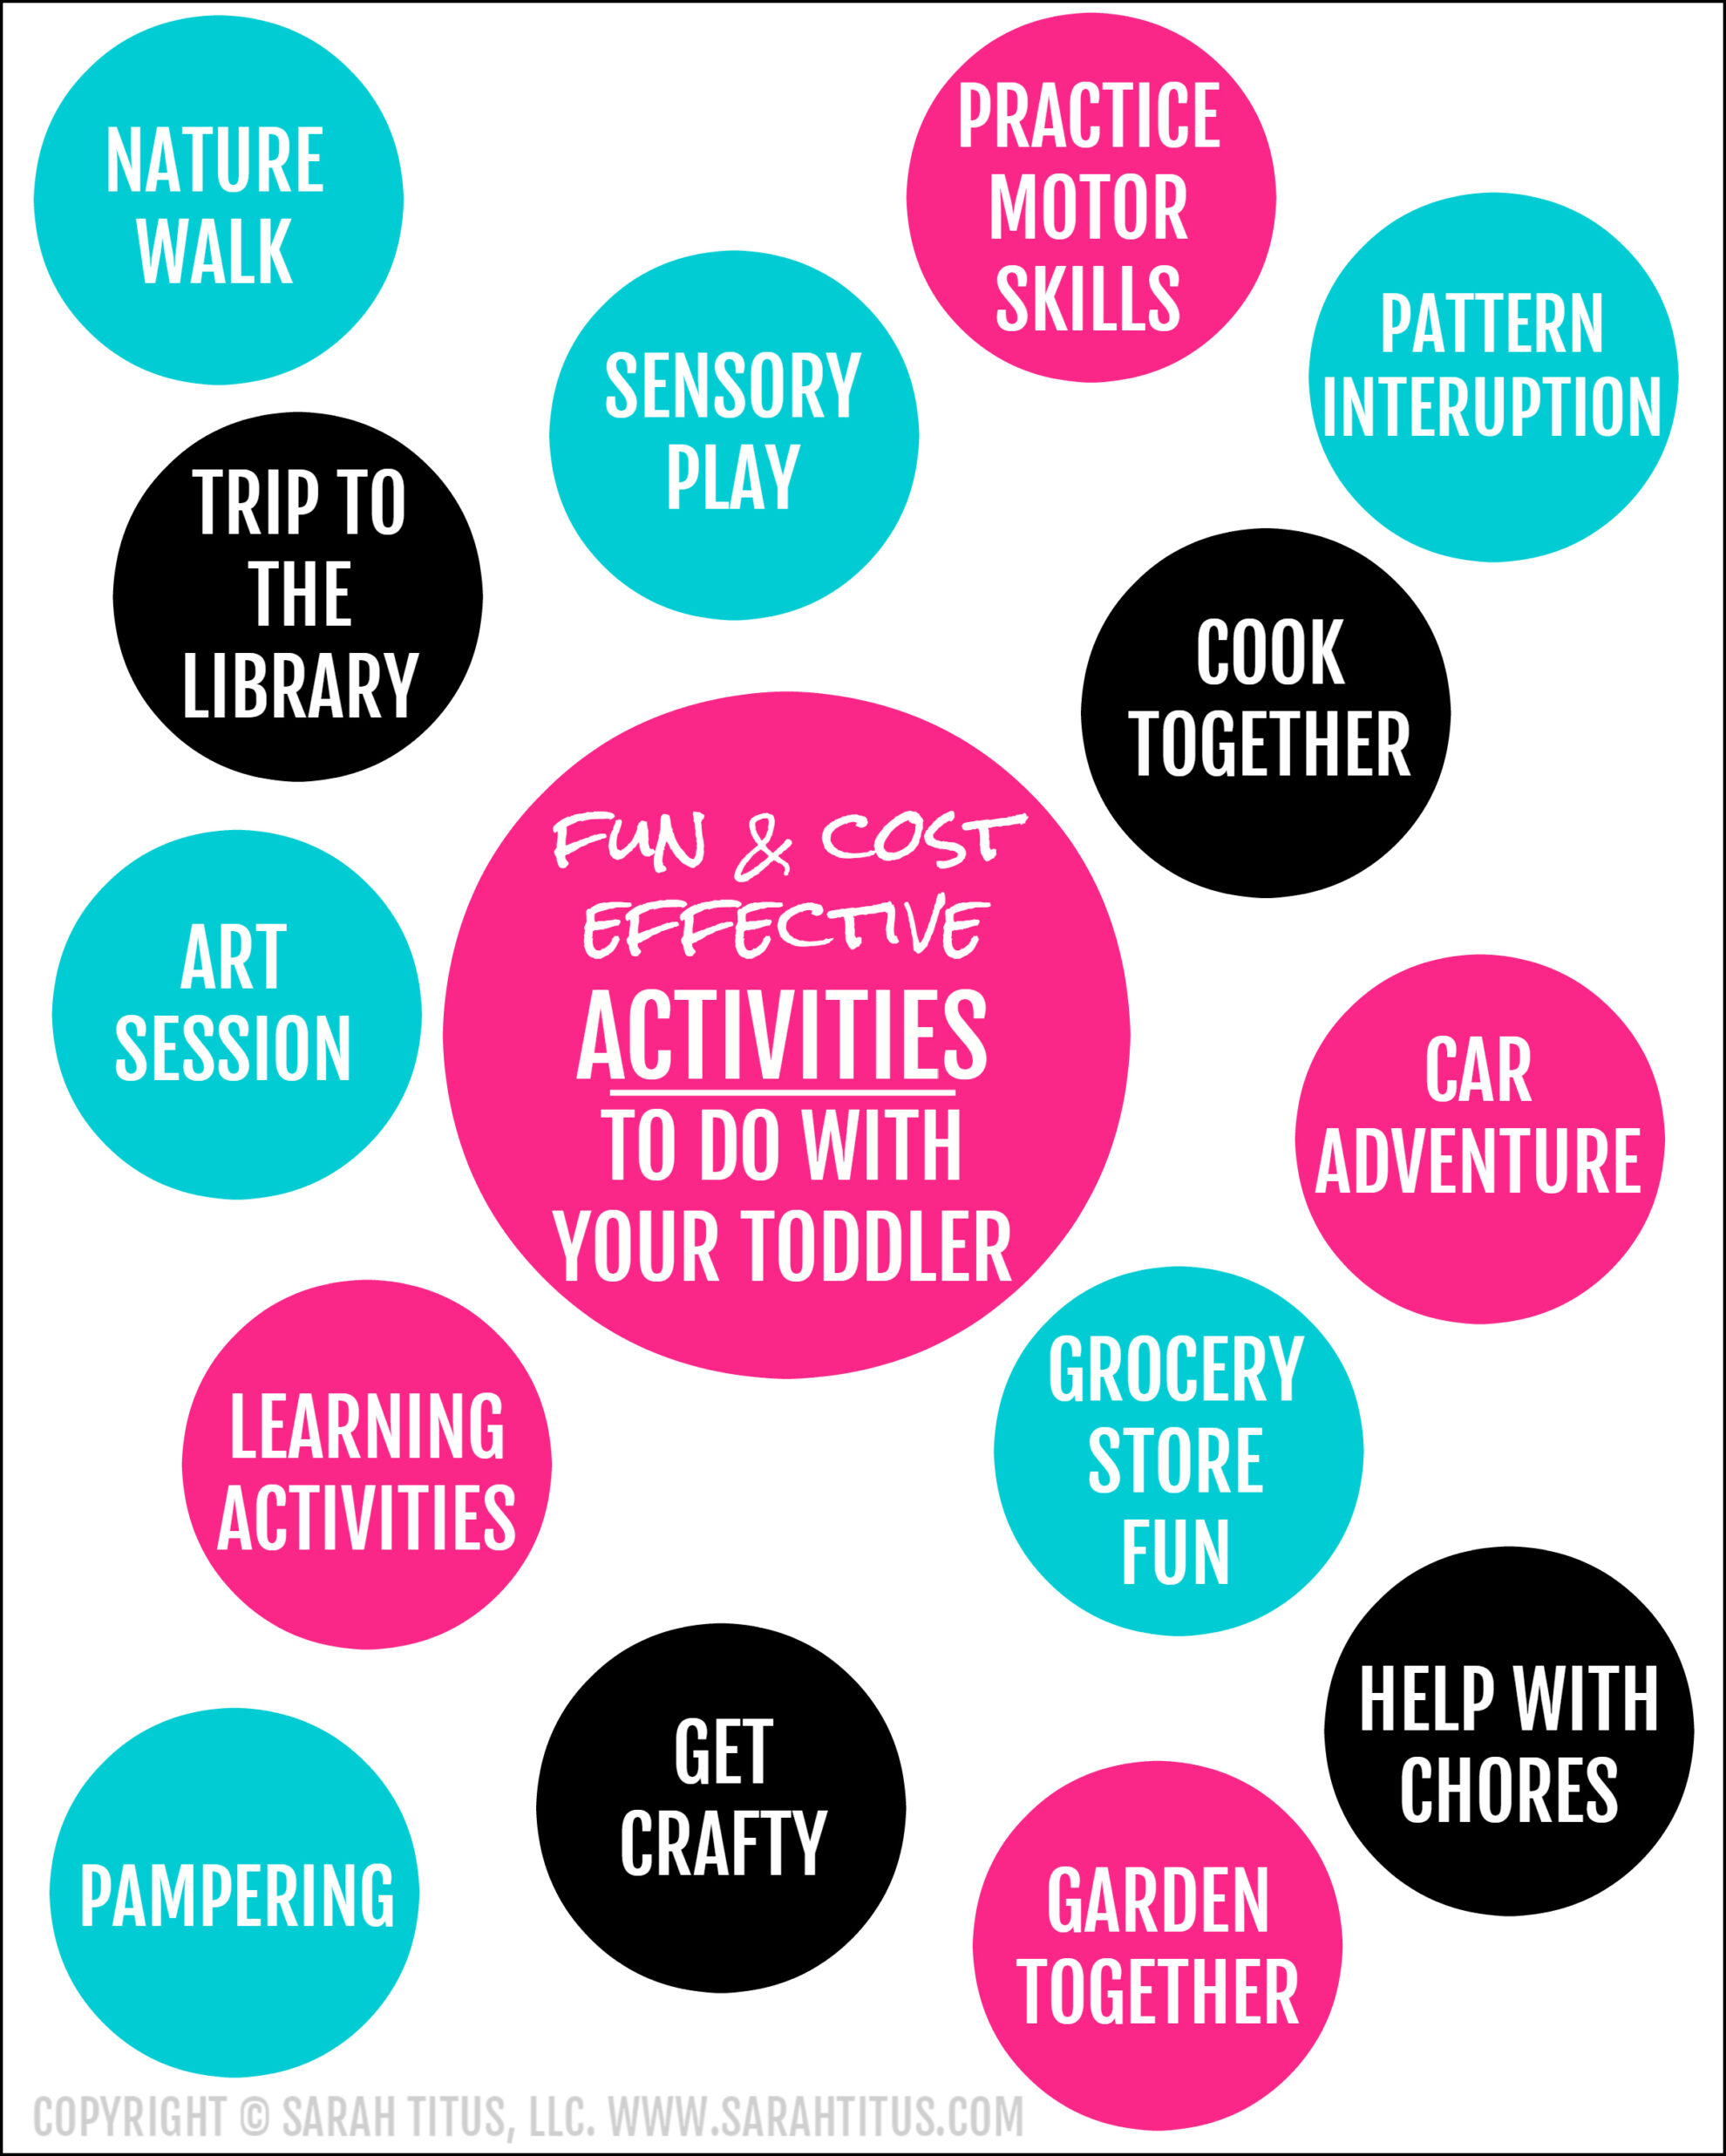 FREE PRINTABLE: Having problems trying to keep your toddler entertained while staying budget minded? Check out these fun & cost effective activities to do with your toddler that are sure to please...and budget friendly!